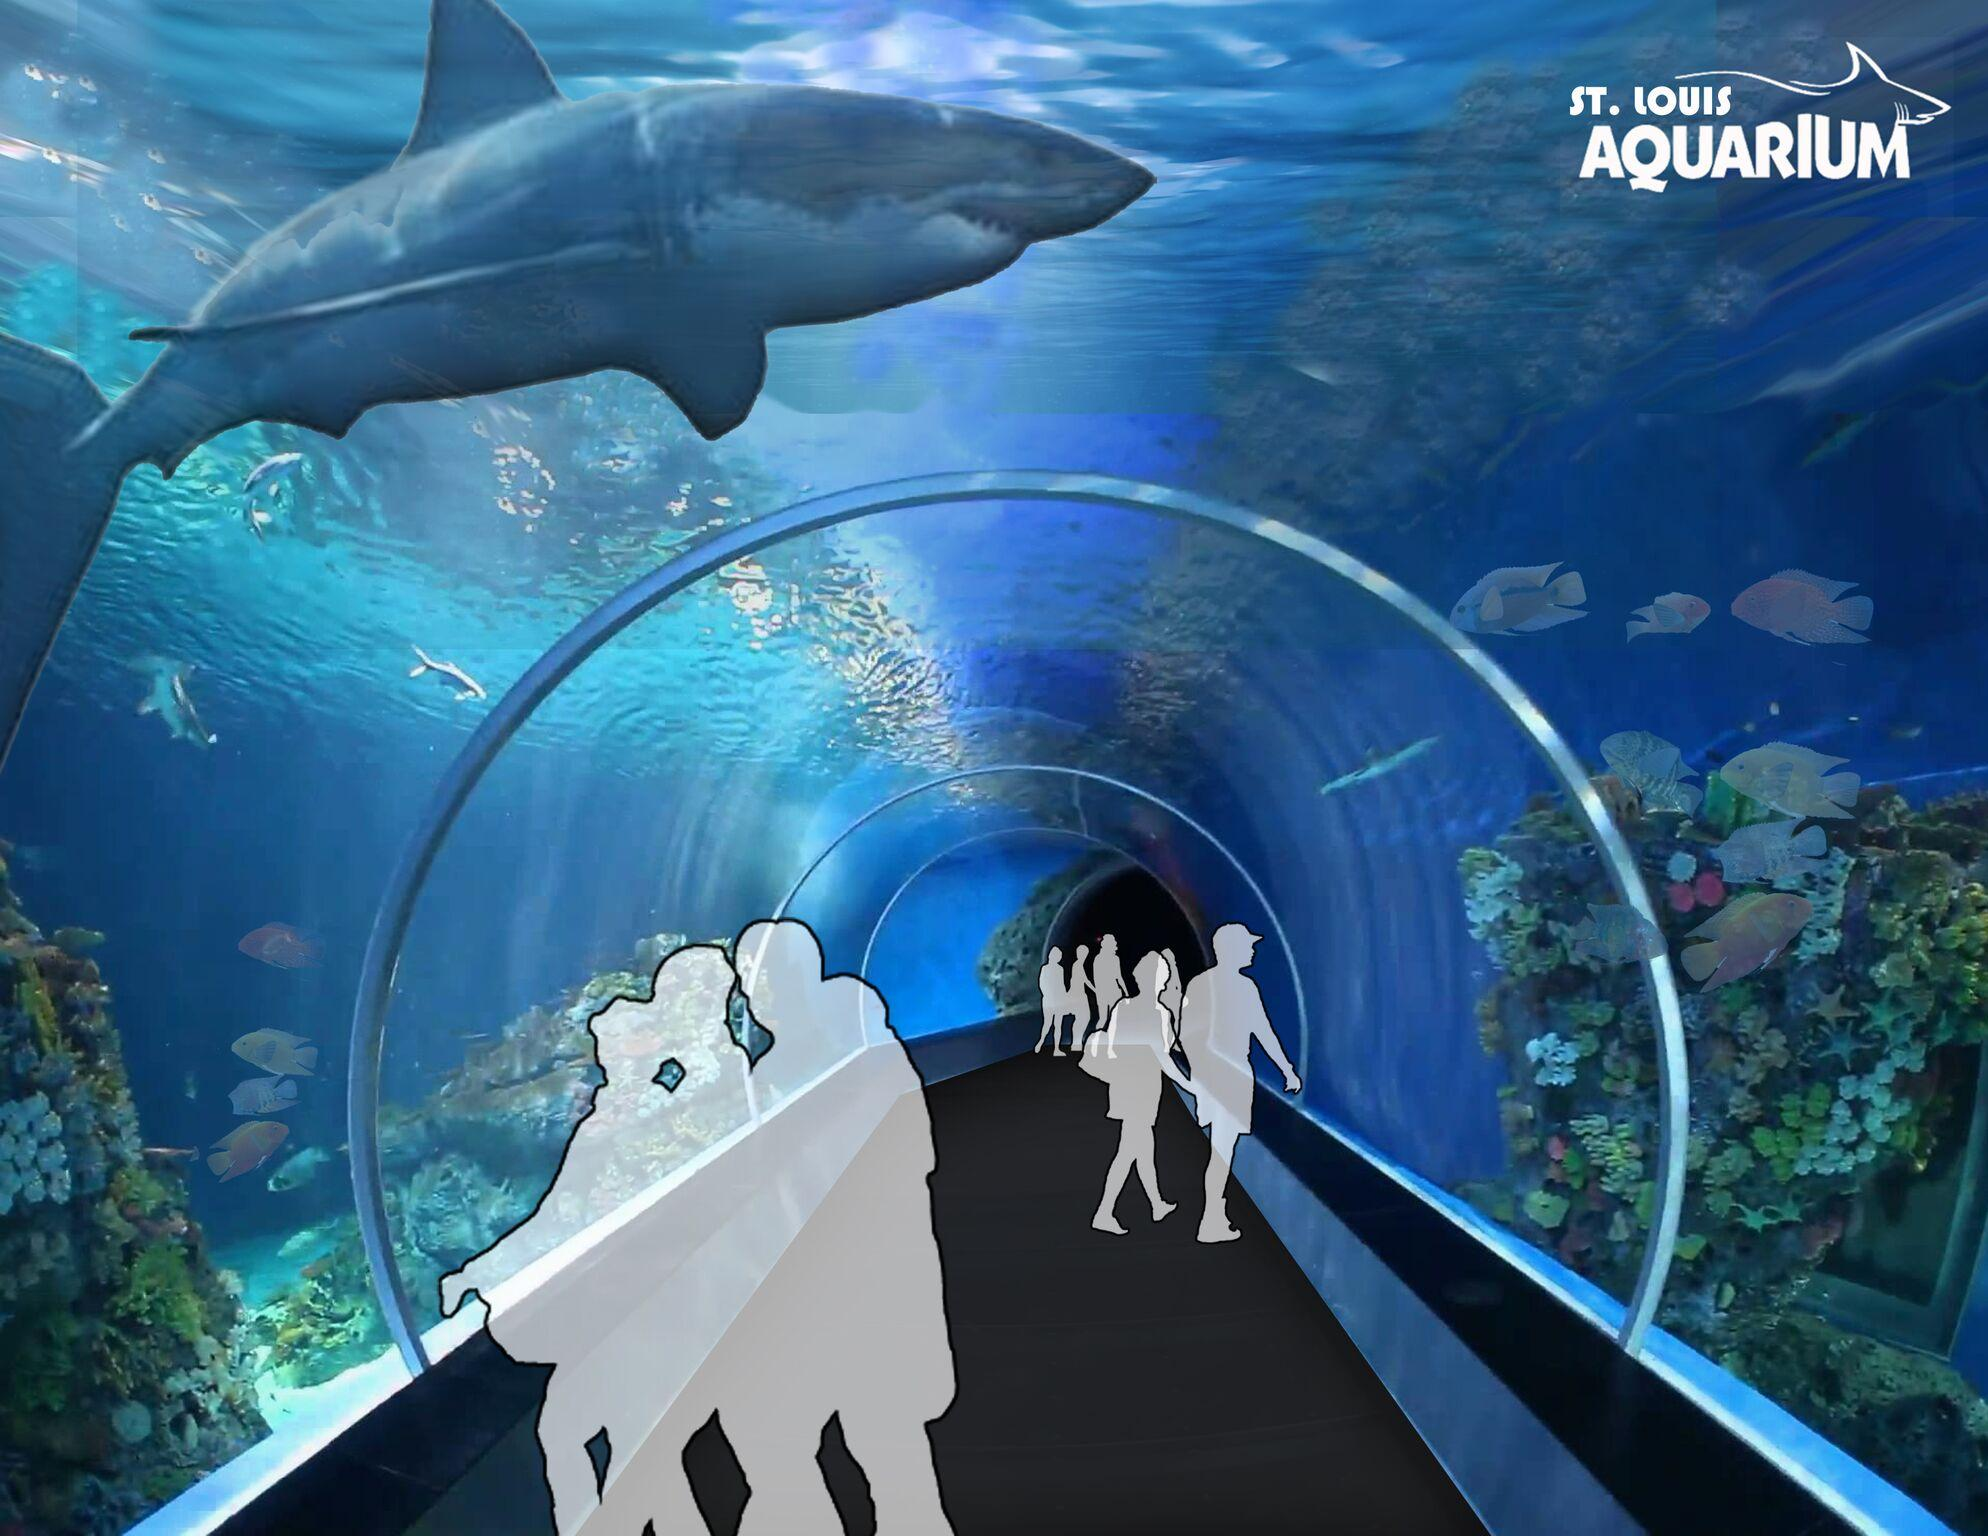 an aquarium for st louis is part of the redesign for